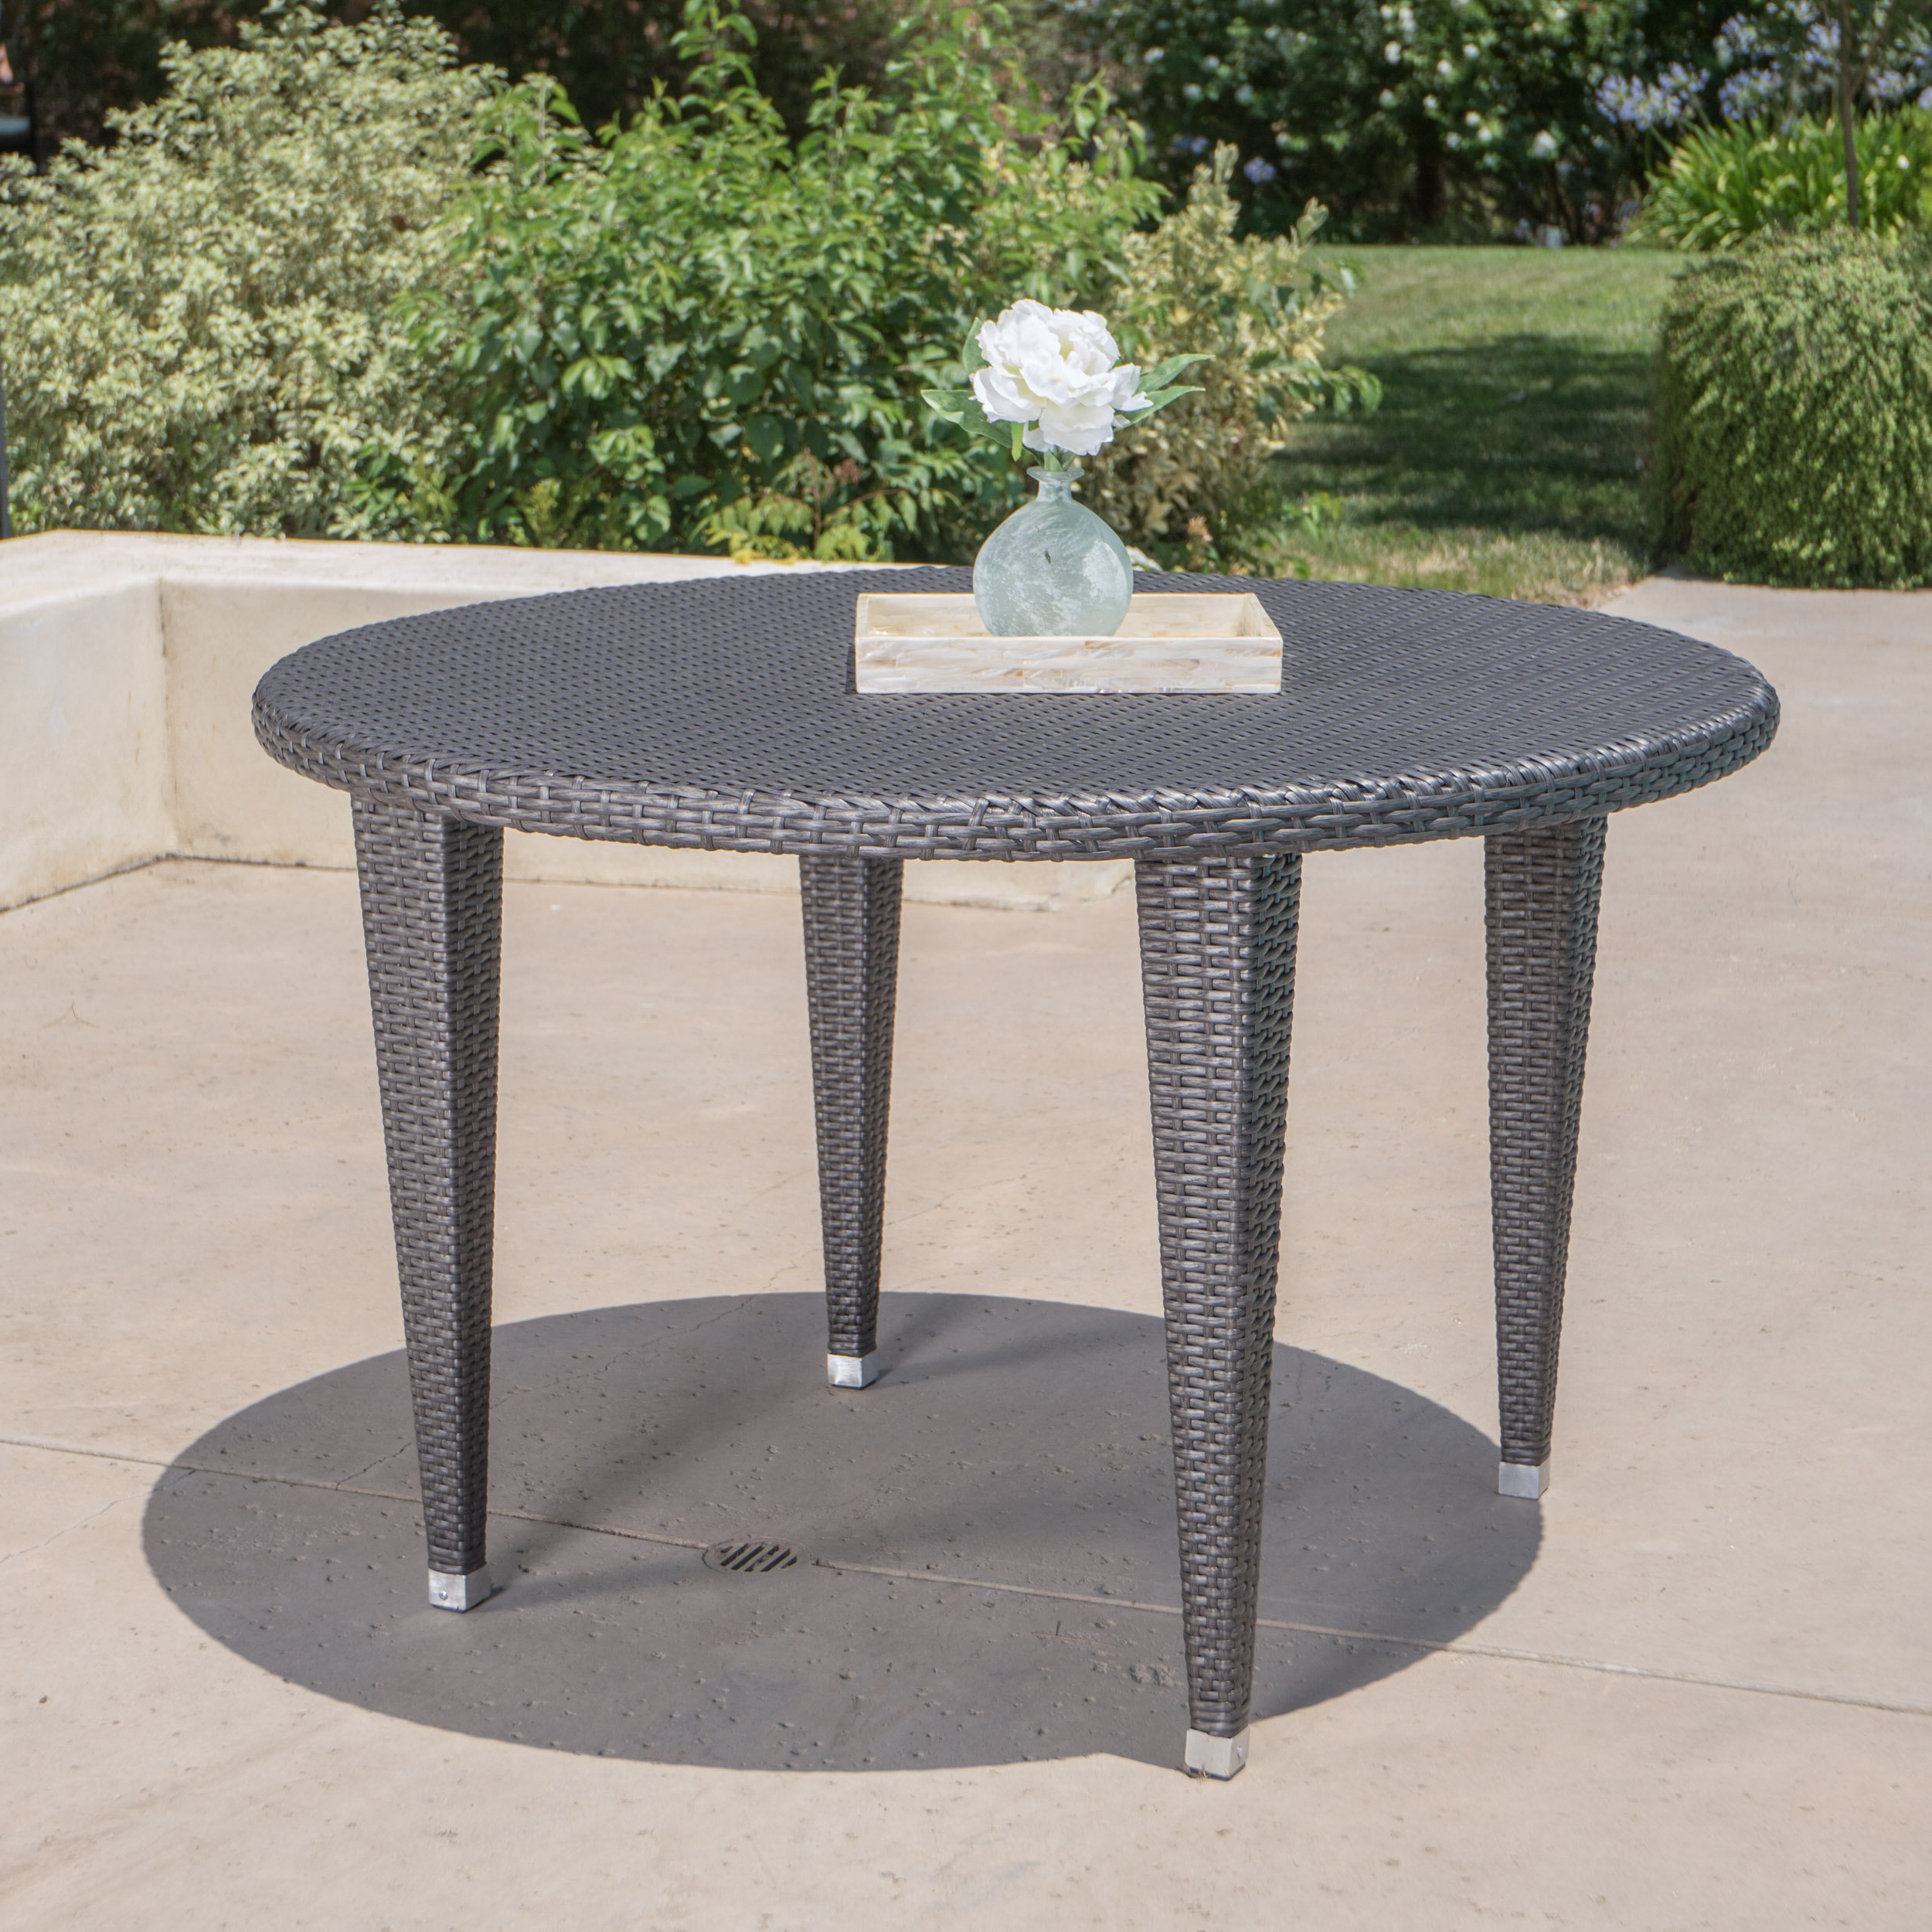 Crantor Wicker/rattan Dining Table Pertaining To Fashionable Letona Patio Sectionals With Cushions (View 21 of 25)